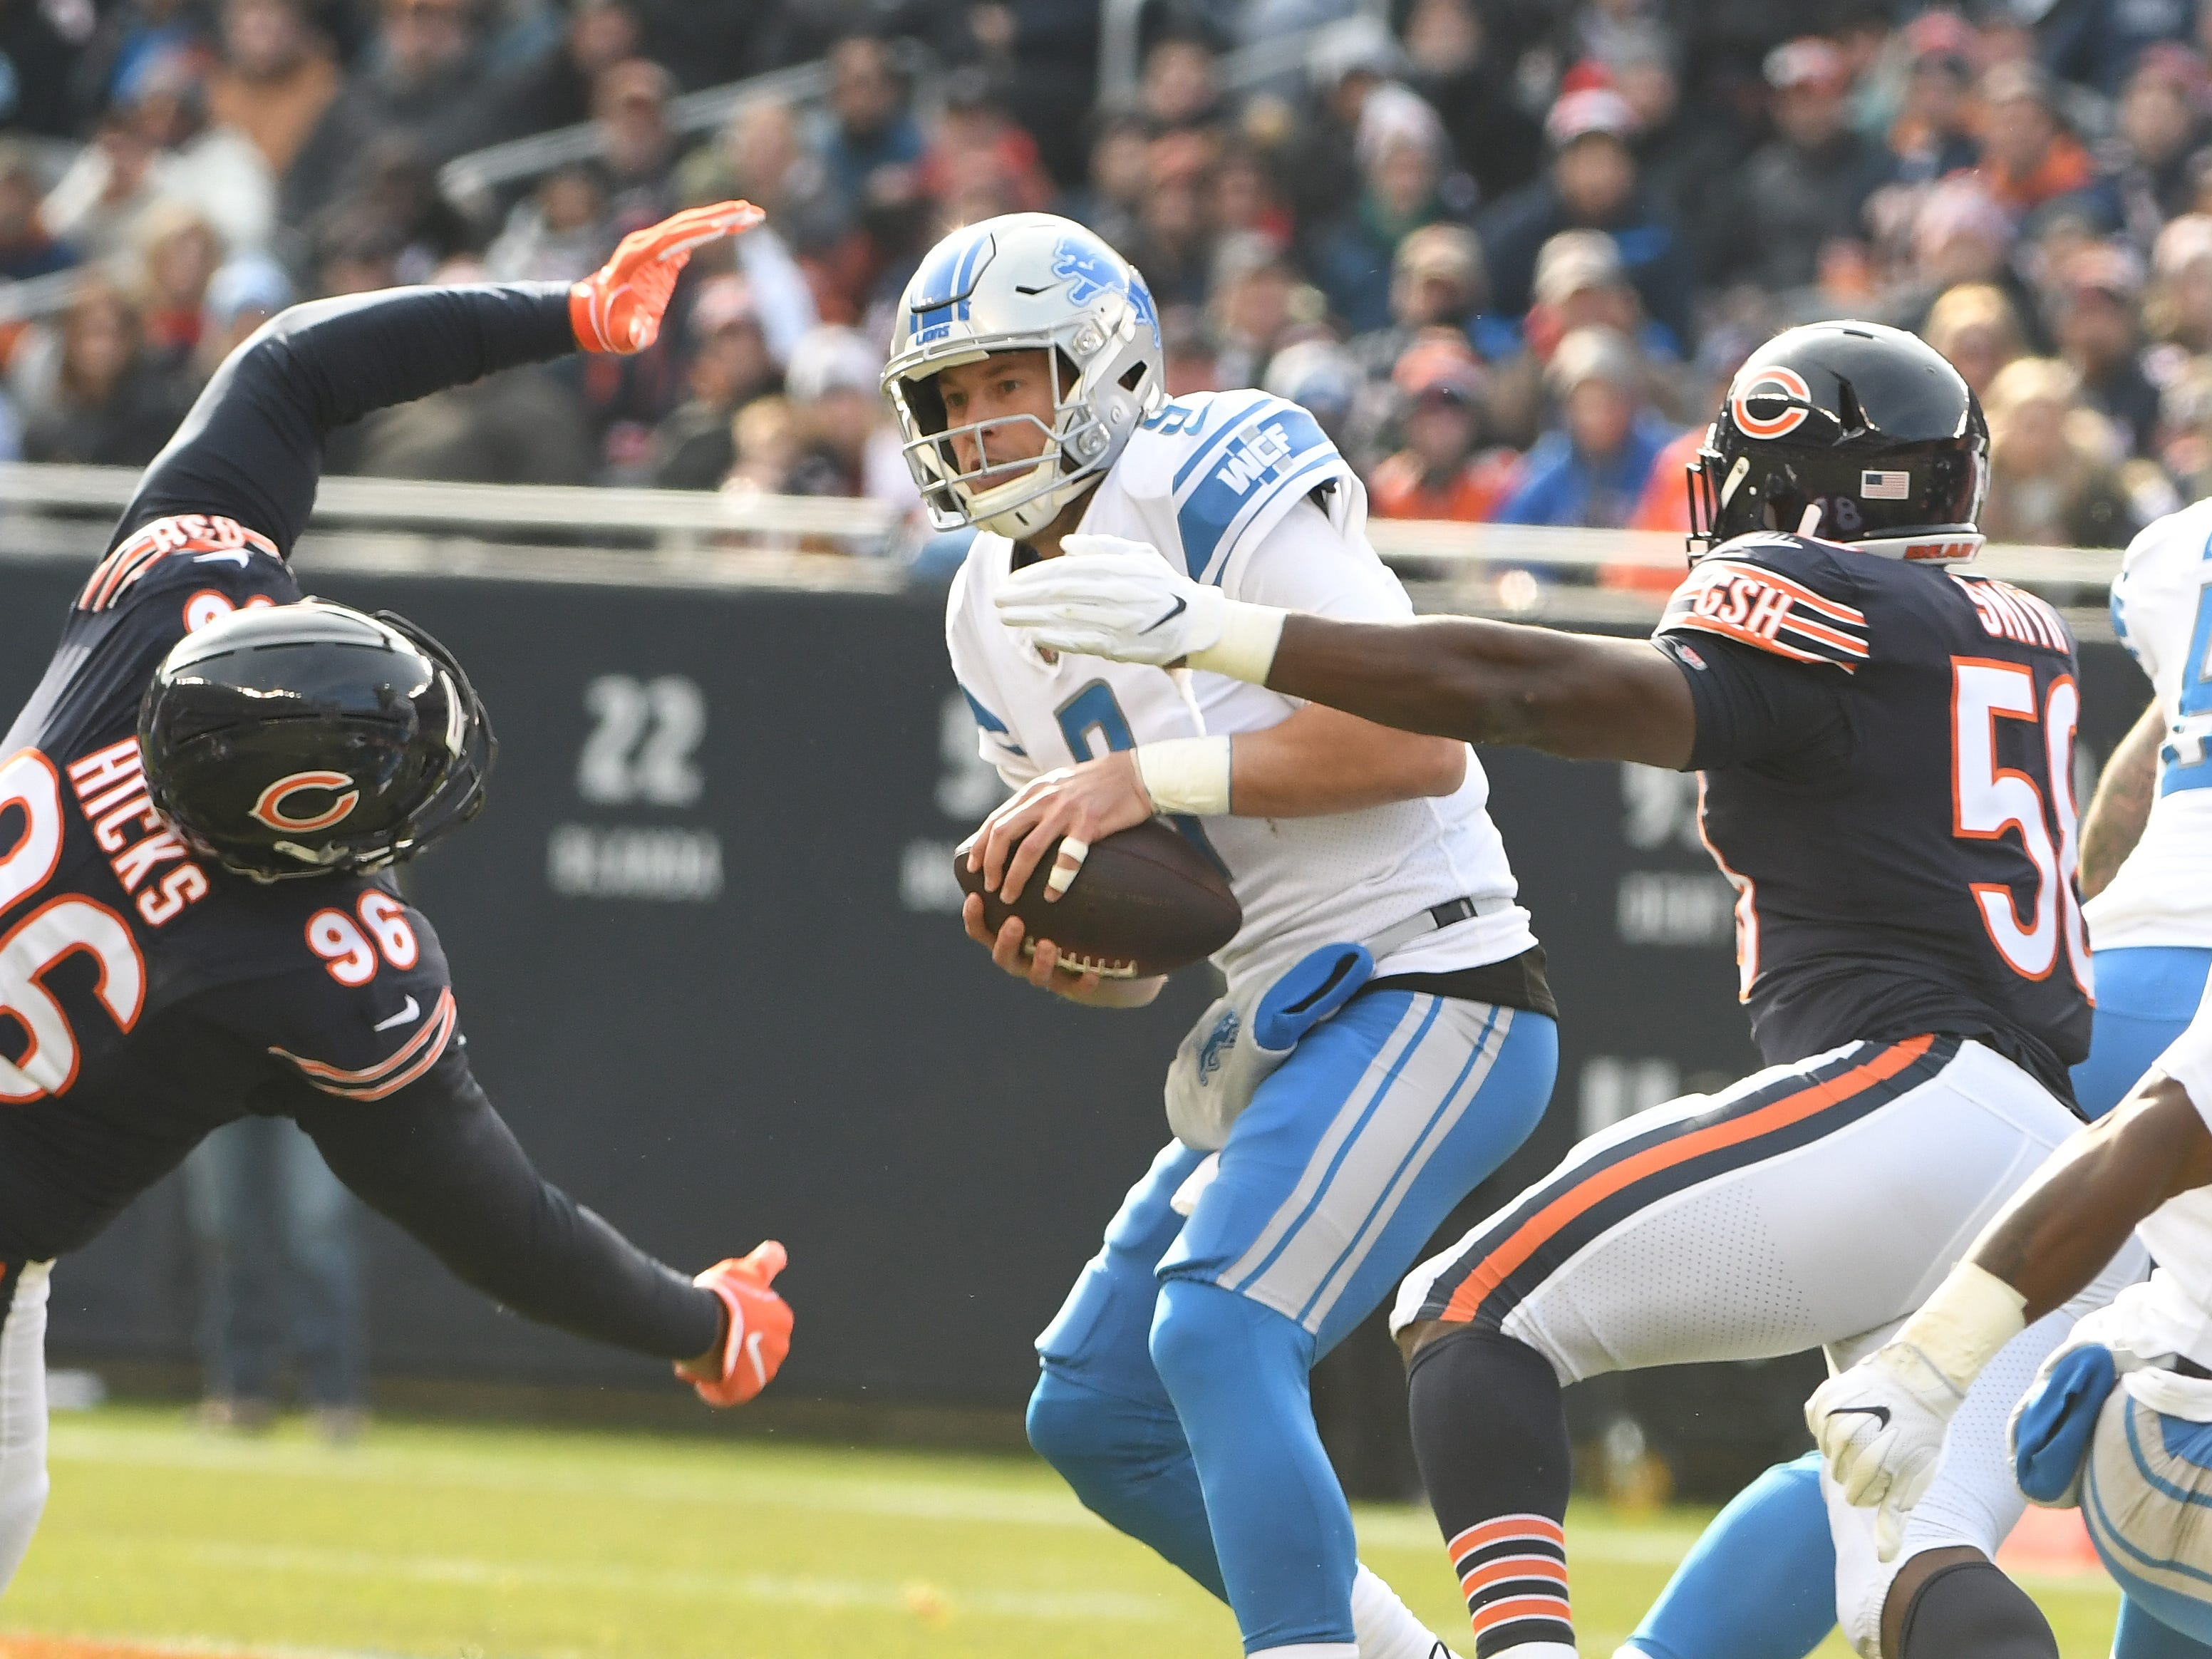 The hits are coming as Lions quarterback Matthew Stafford braces for a sack by Bears' Akiem Hicks and Roquan Smith in the fist quarter.